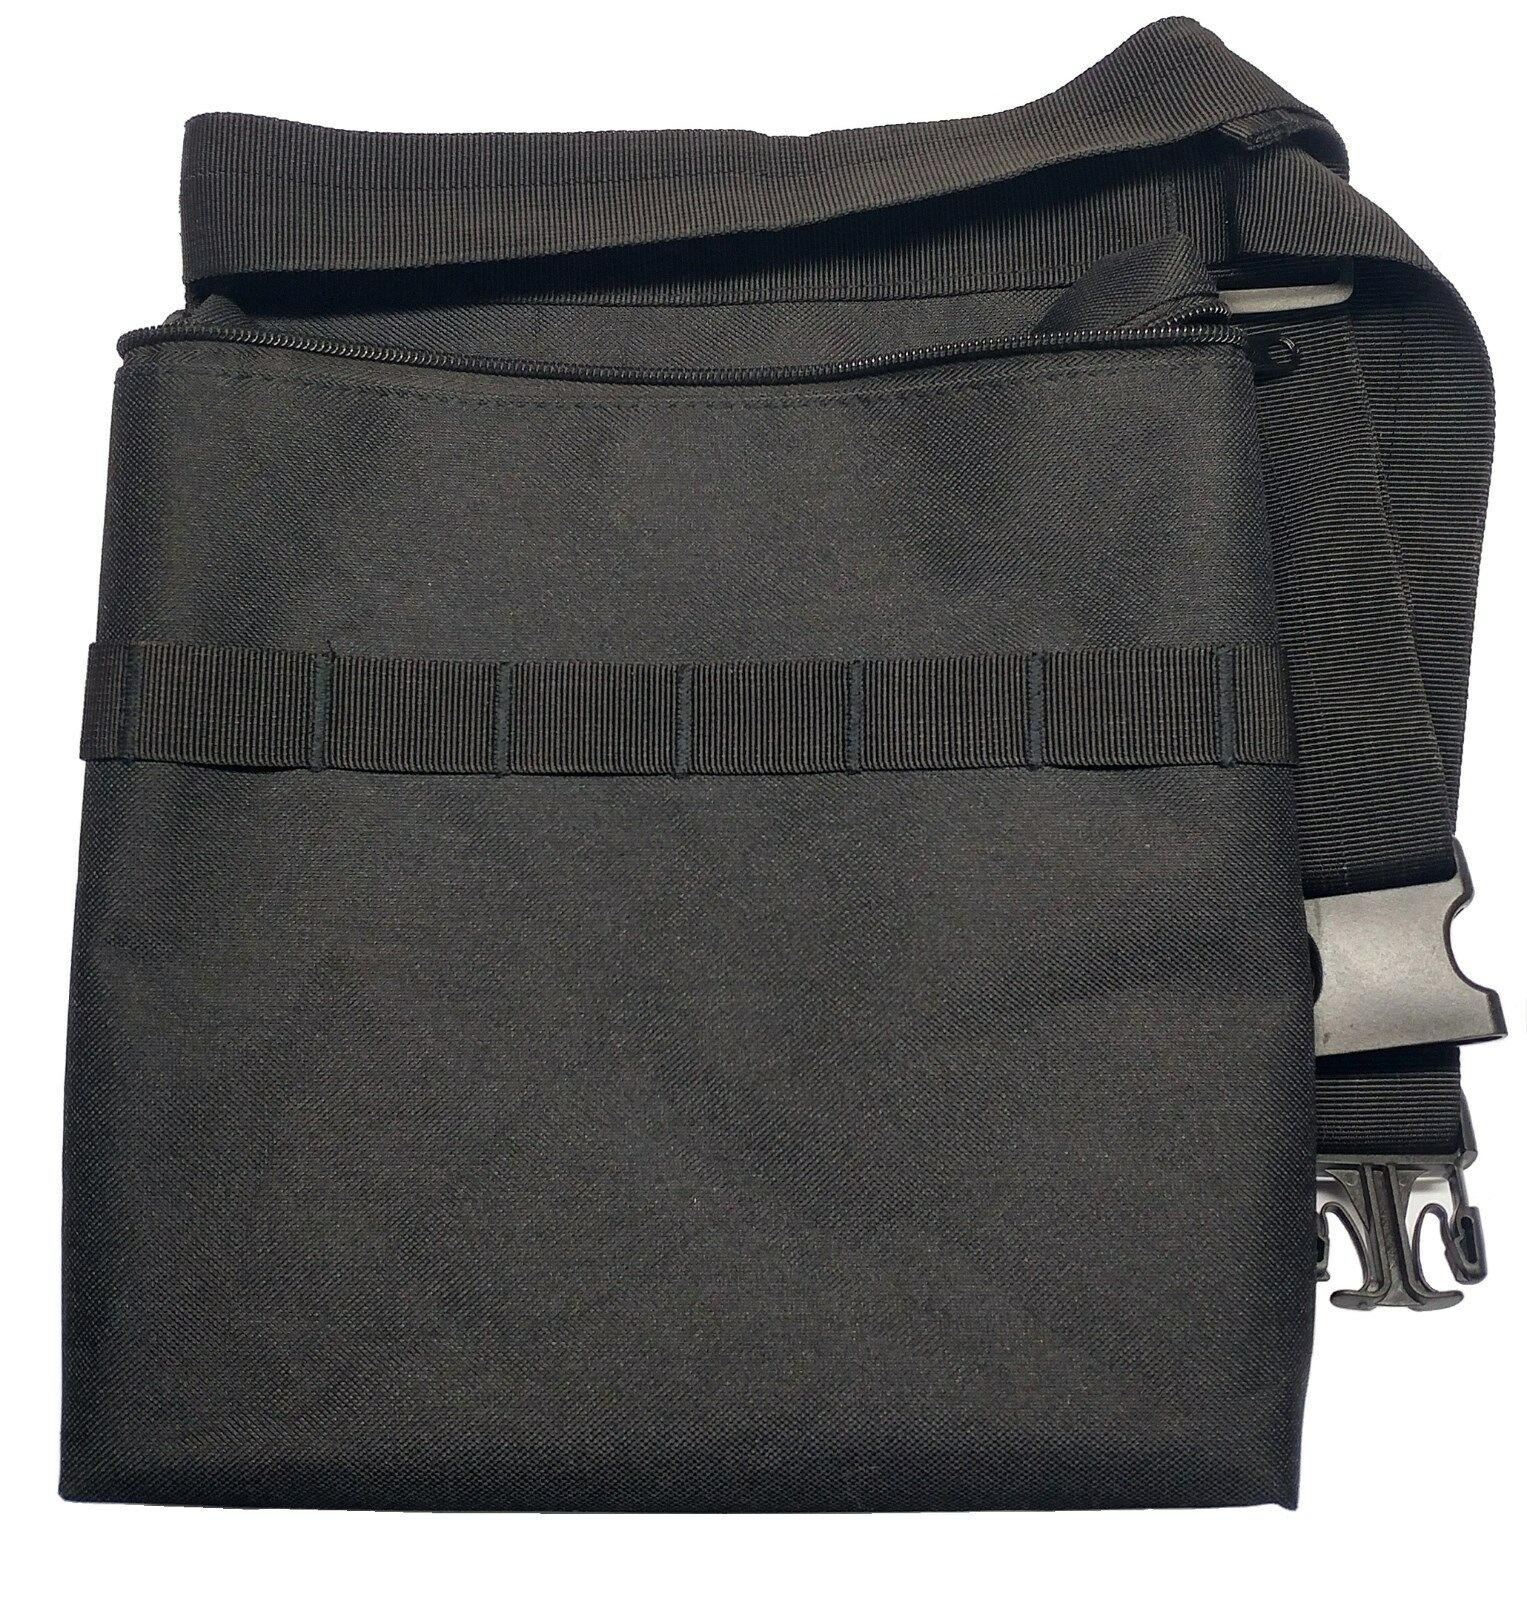 black metal detecting diggers pouch with interior